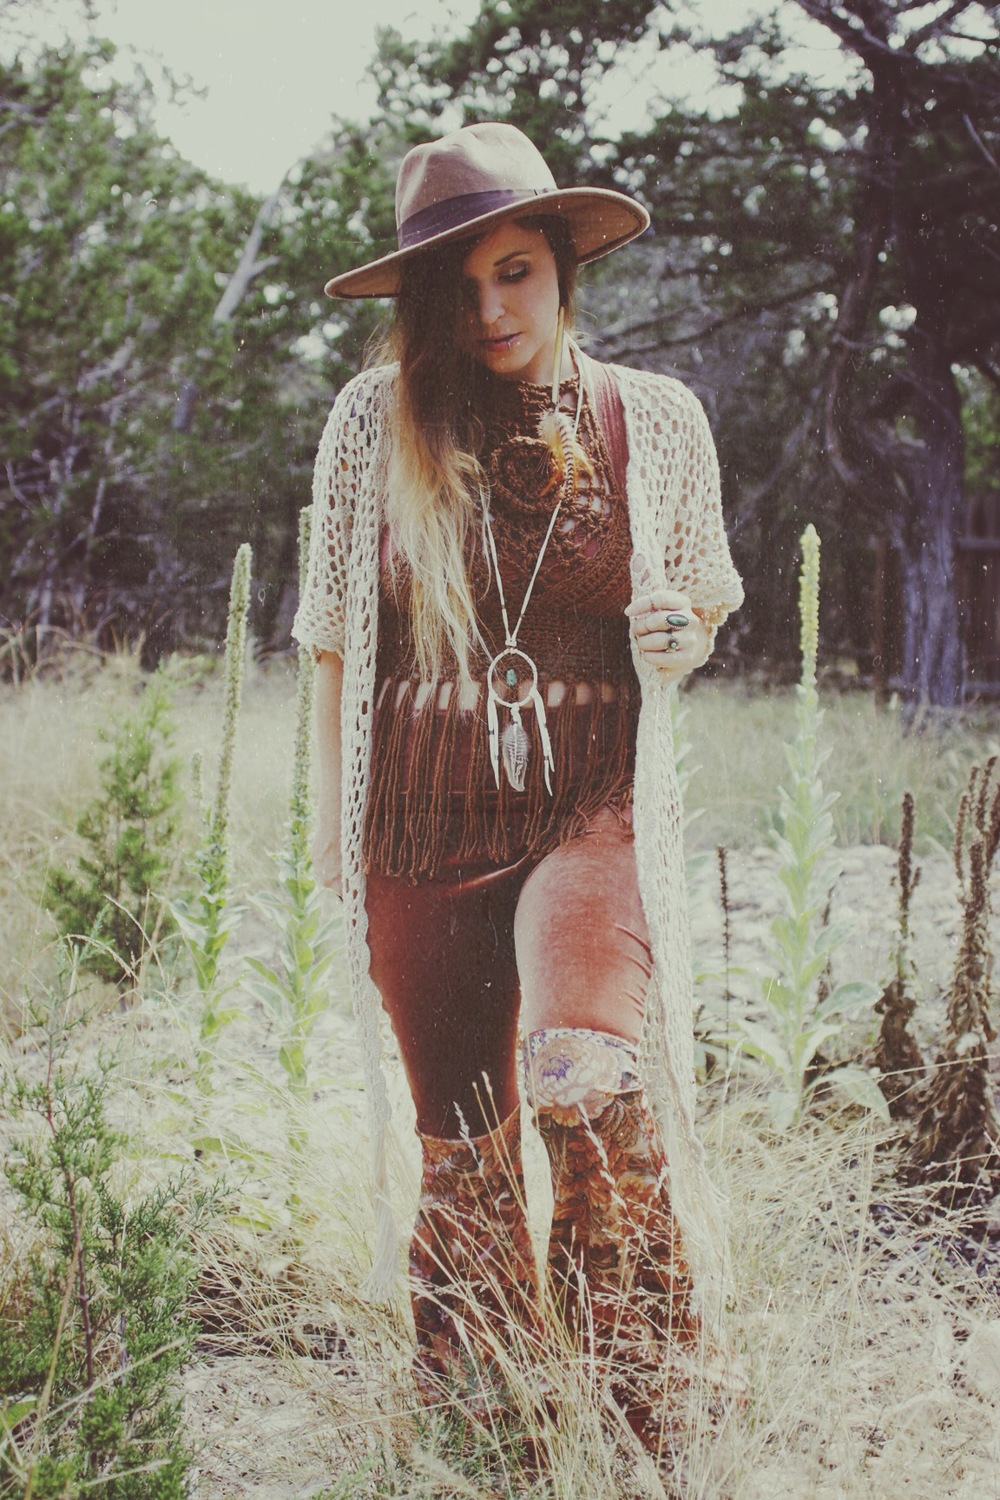 Velvet Dust Lookbook via bohocollective.com